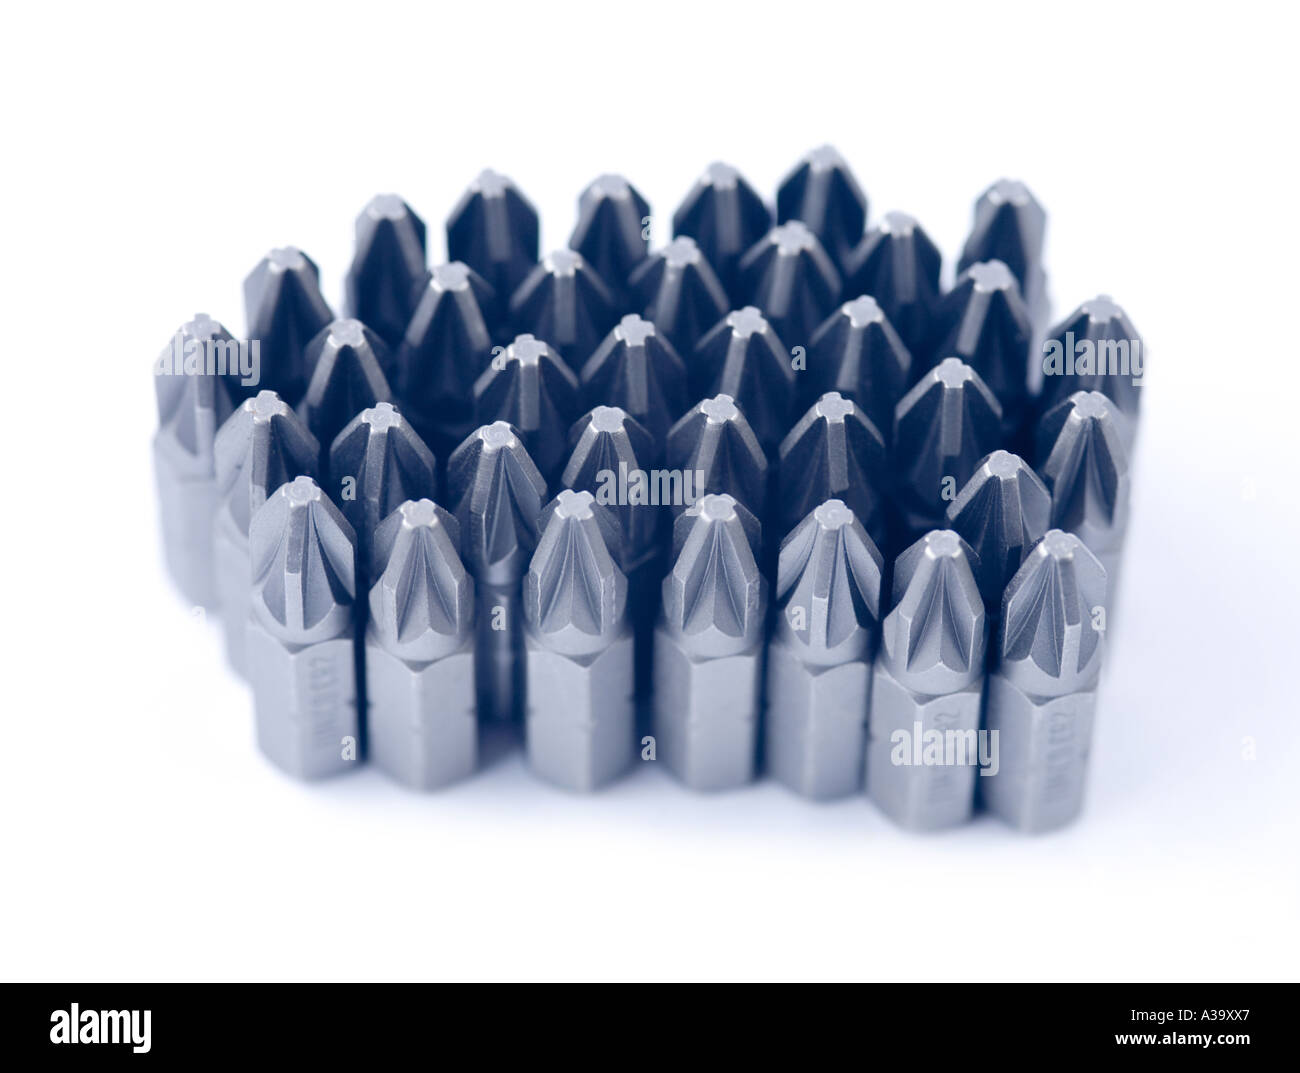 screwdriver bits - Stock Image